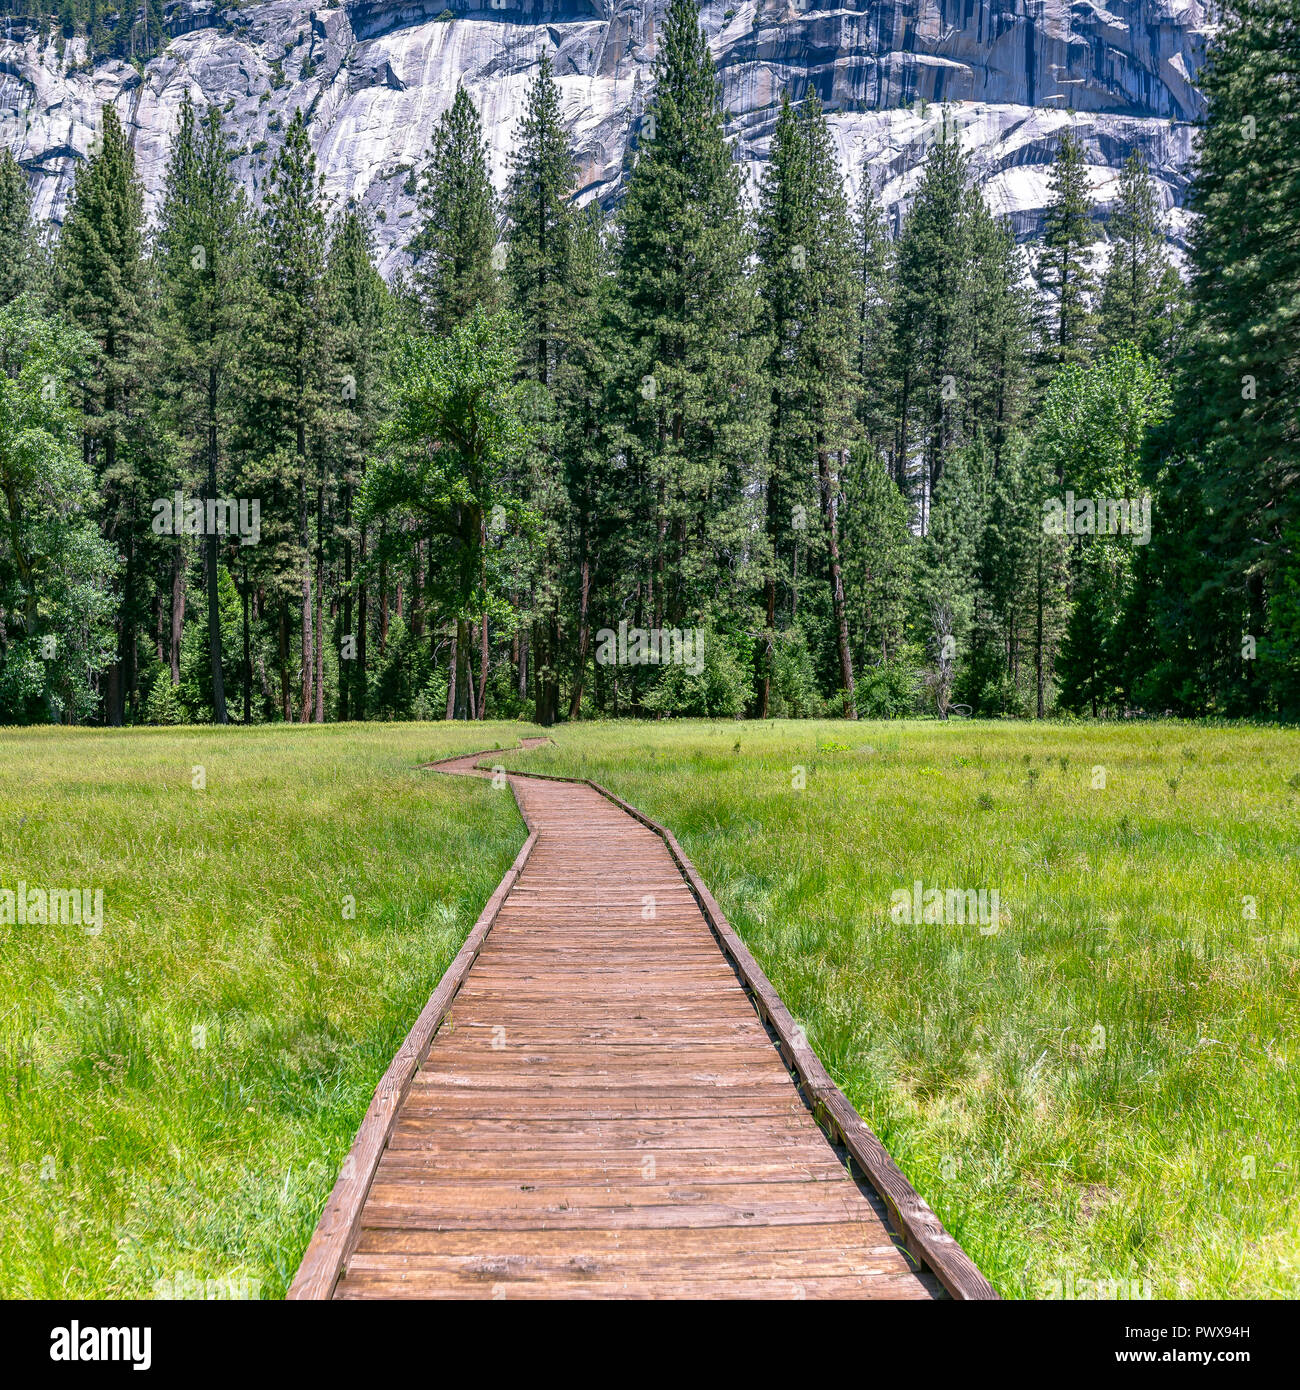 Wooden path on a grassy terrain in Yosemite CA - Stock Image